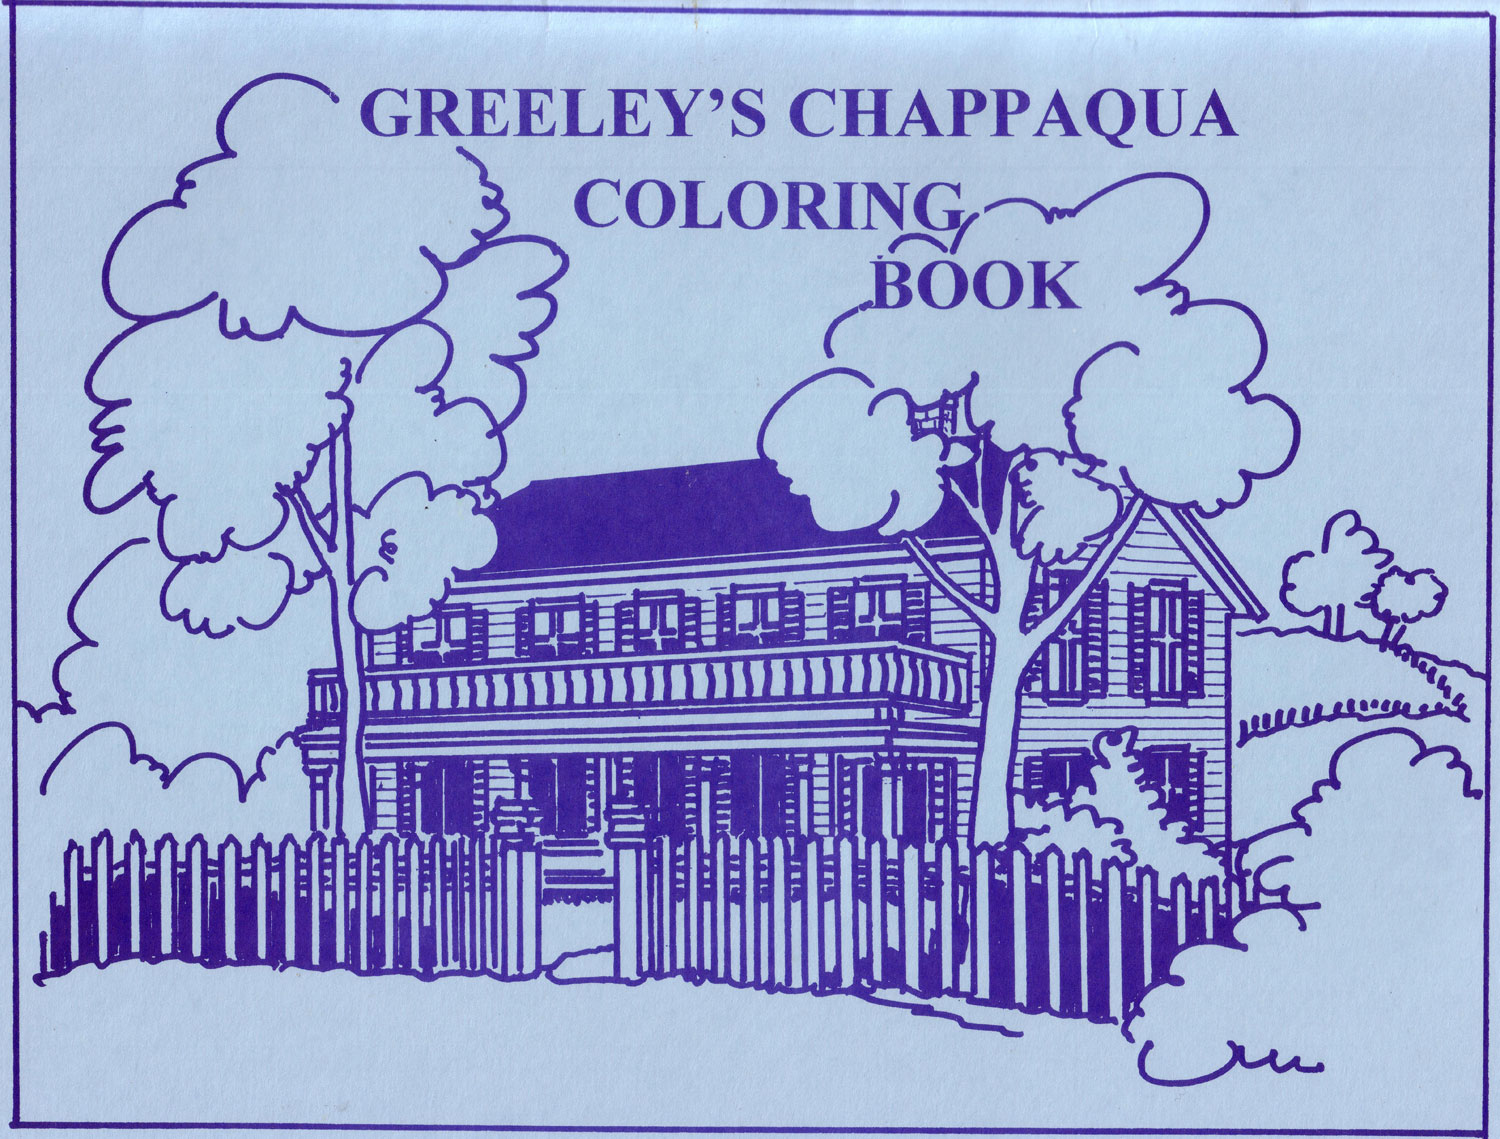 Greeley's-Chappaqua-coloring-book---front-cover